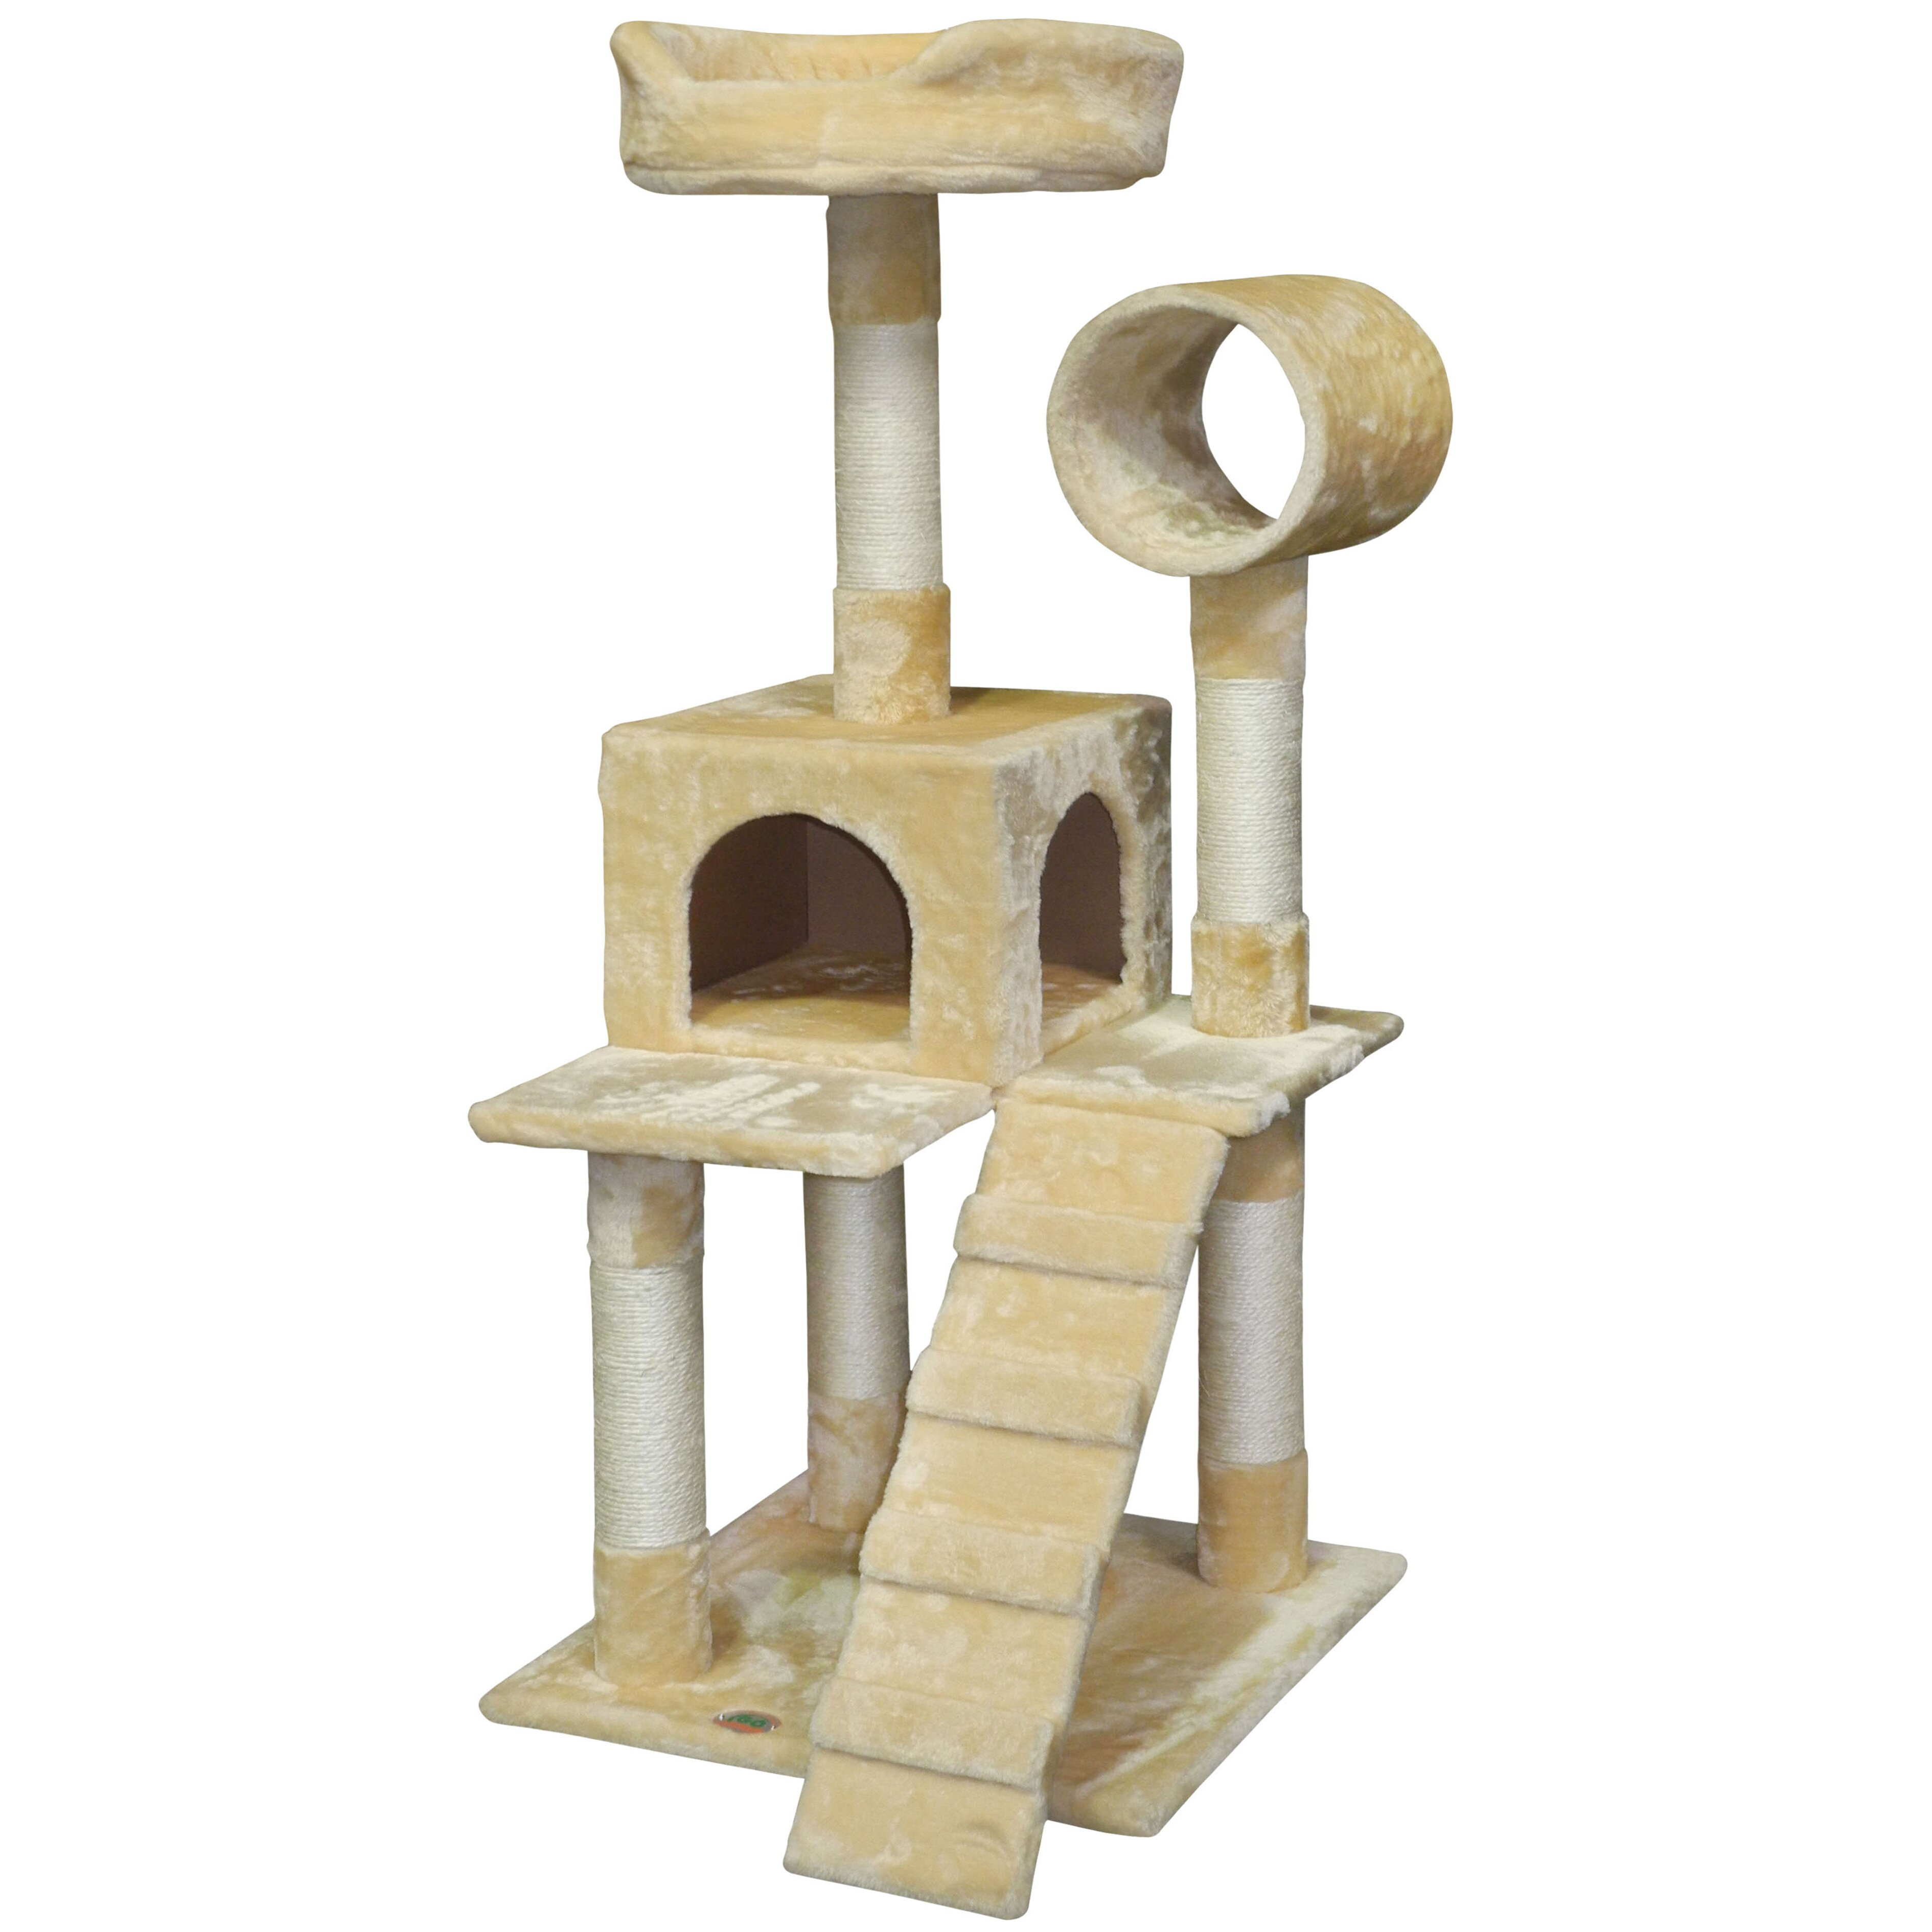 Cat Indoor Playgrounds moreover Watch additionally Ikea Hacks besides Go Pet Club 50 Cat Condo F75 F76 GPC1194 as well Share. on pet cat tree house